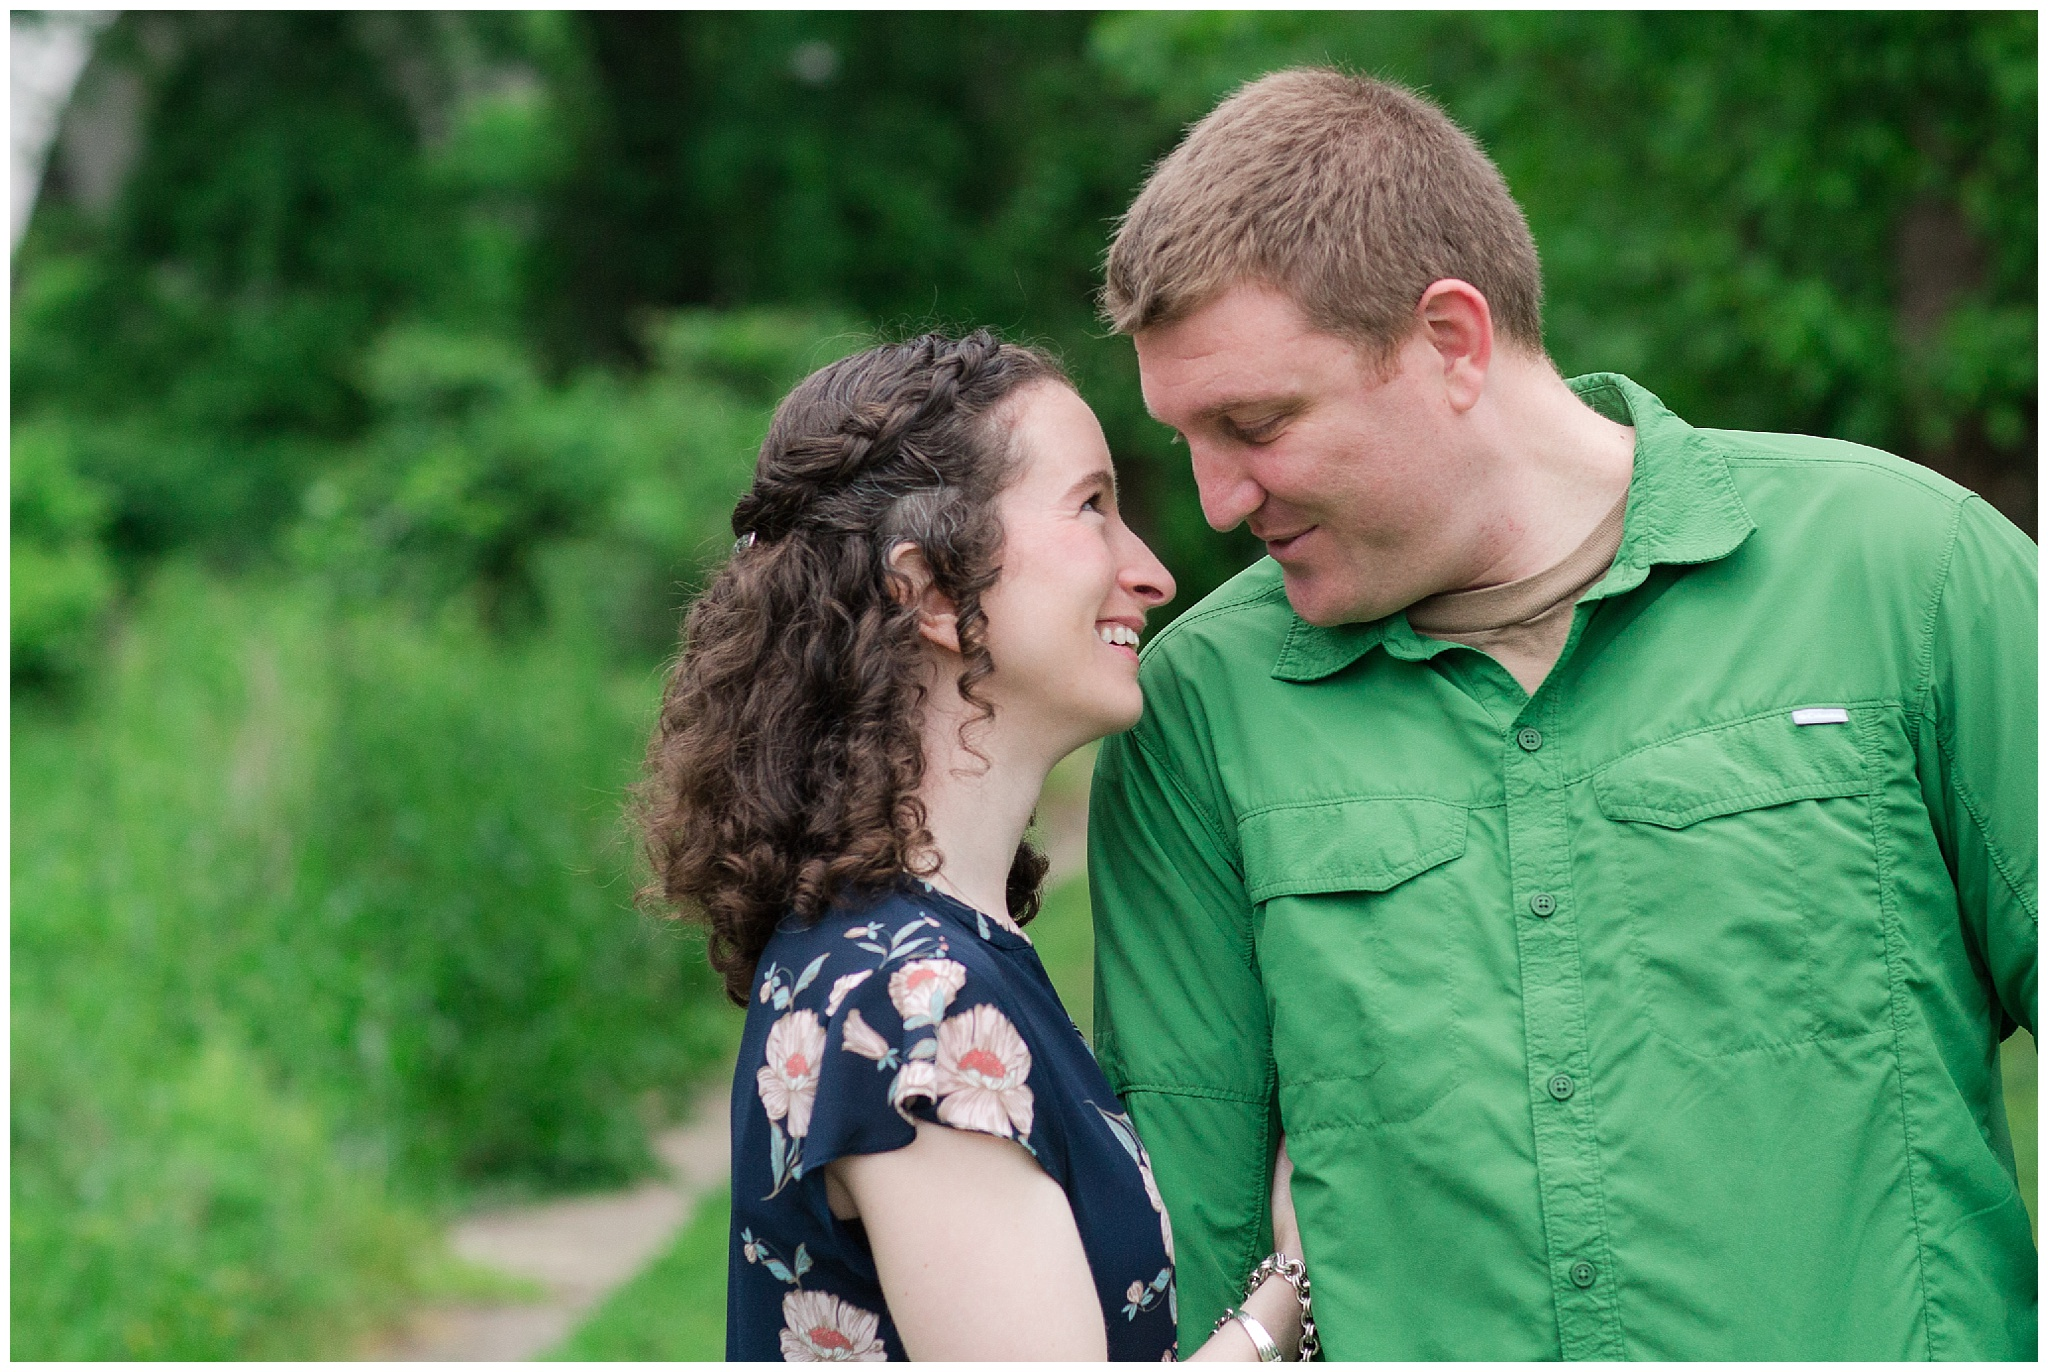 engagement_session_detweiler_0001.jpg